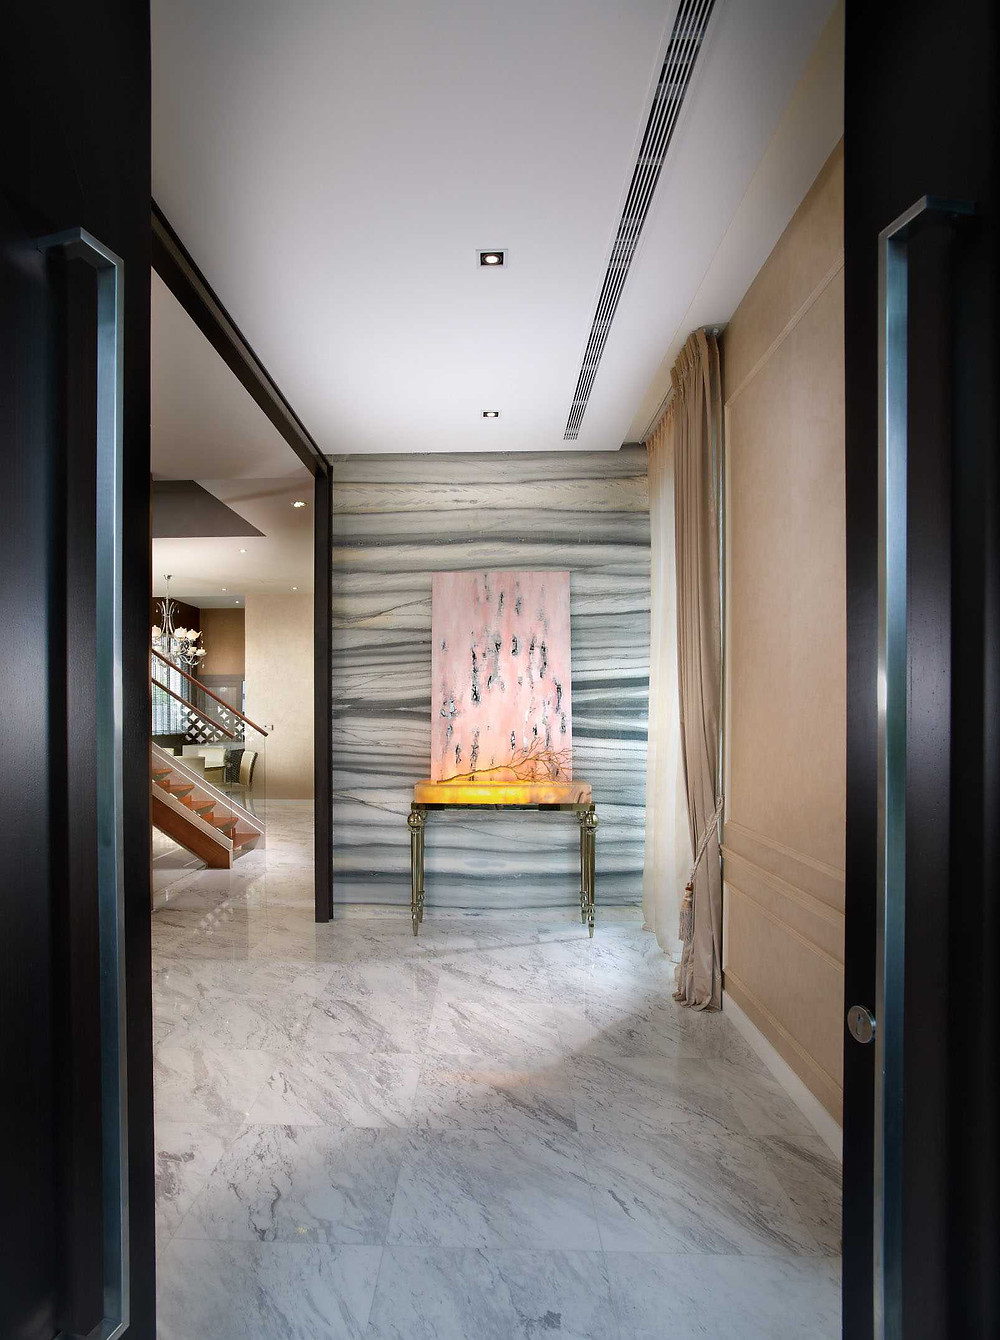 Parkstone Road - Residential Property Singapore - Timeless Designs - Marble - Accent - Artwork - Foyer - Best Interior Design Singapore - Designworx Interior Consultant